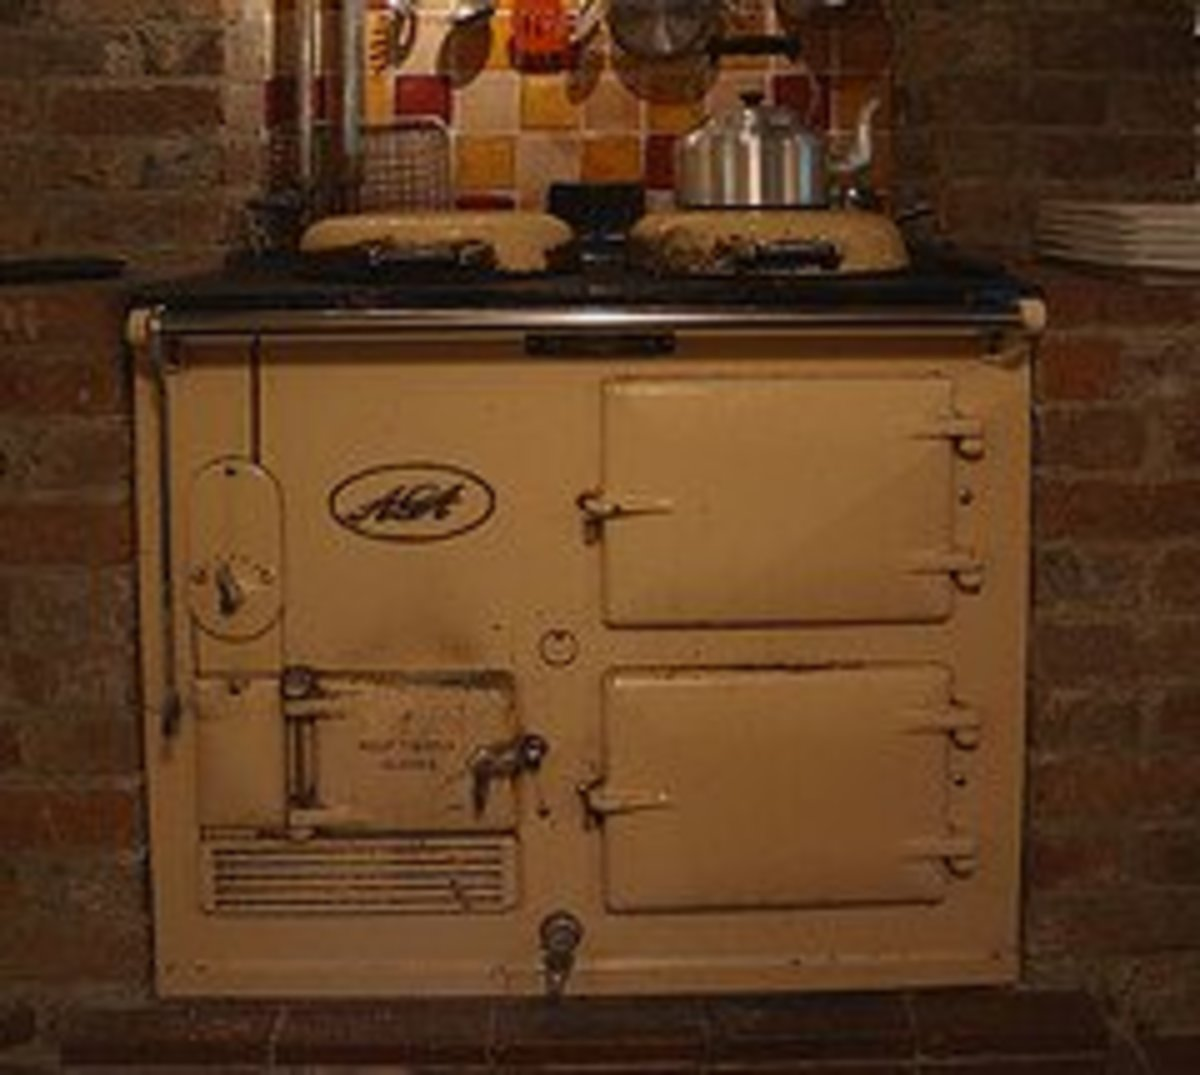 An old and much-loved AGA